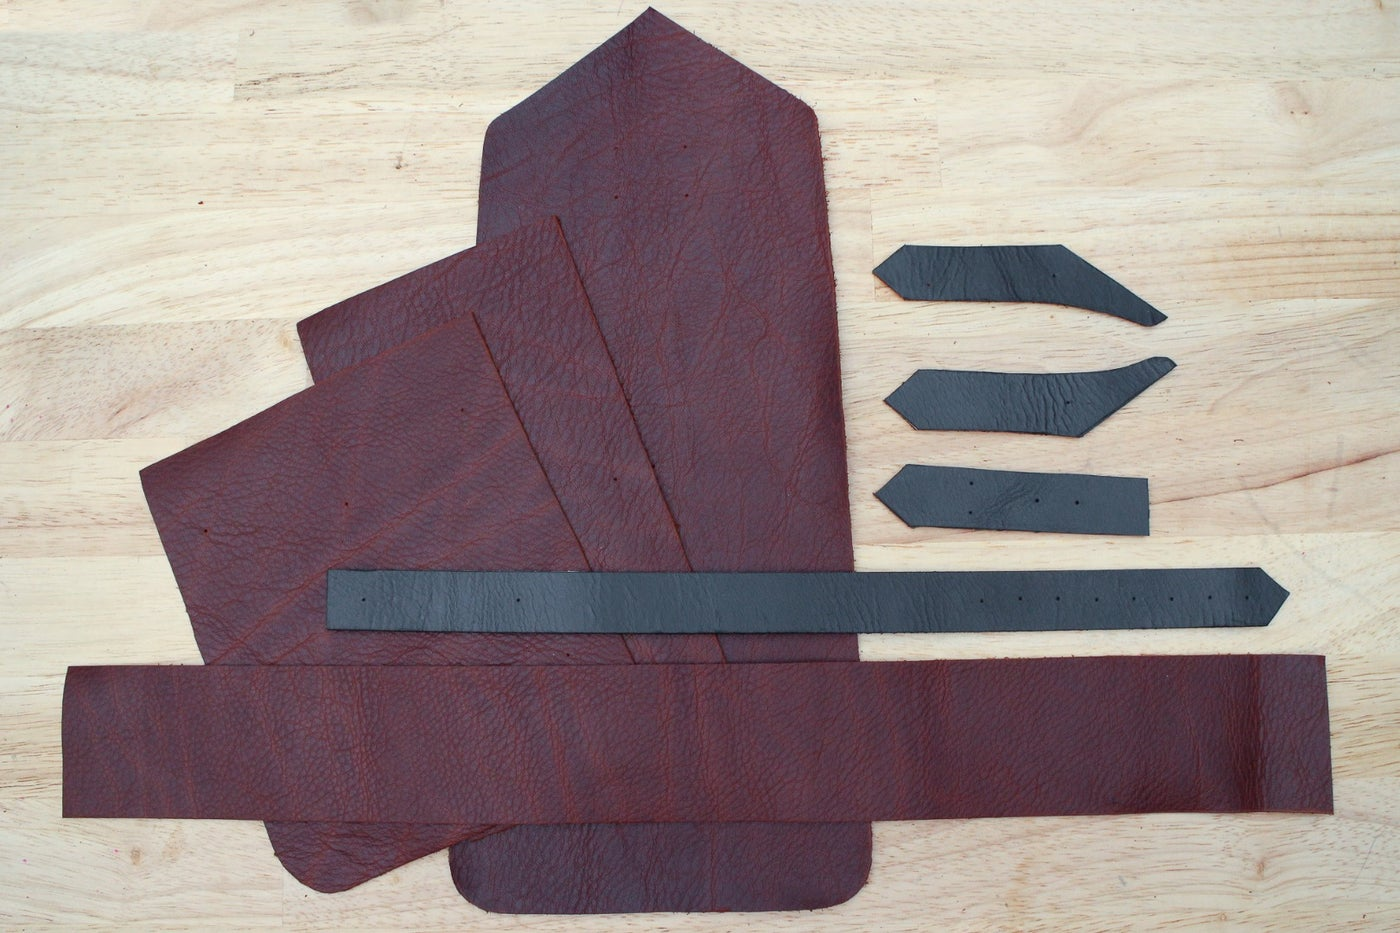 Cut Out Your Pattern in Leather